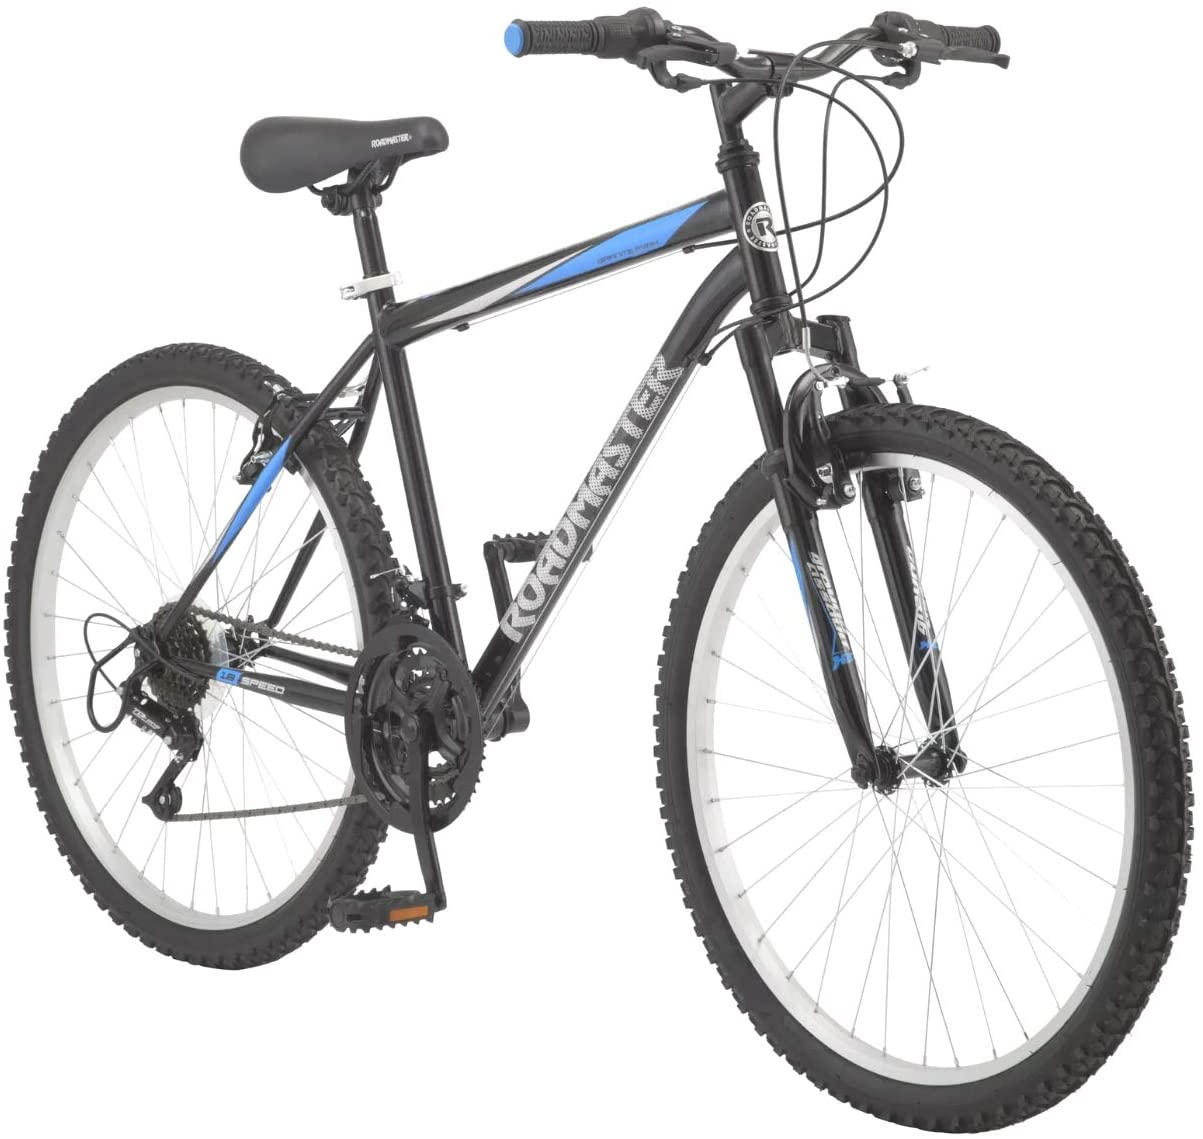 Review of Roadmaster - 26 Inches Granite Peak Men's Mountain Bike, Black/Blue